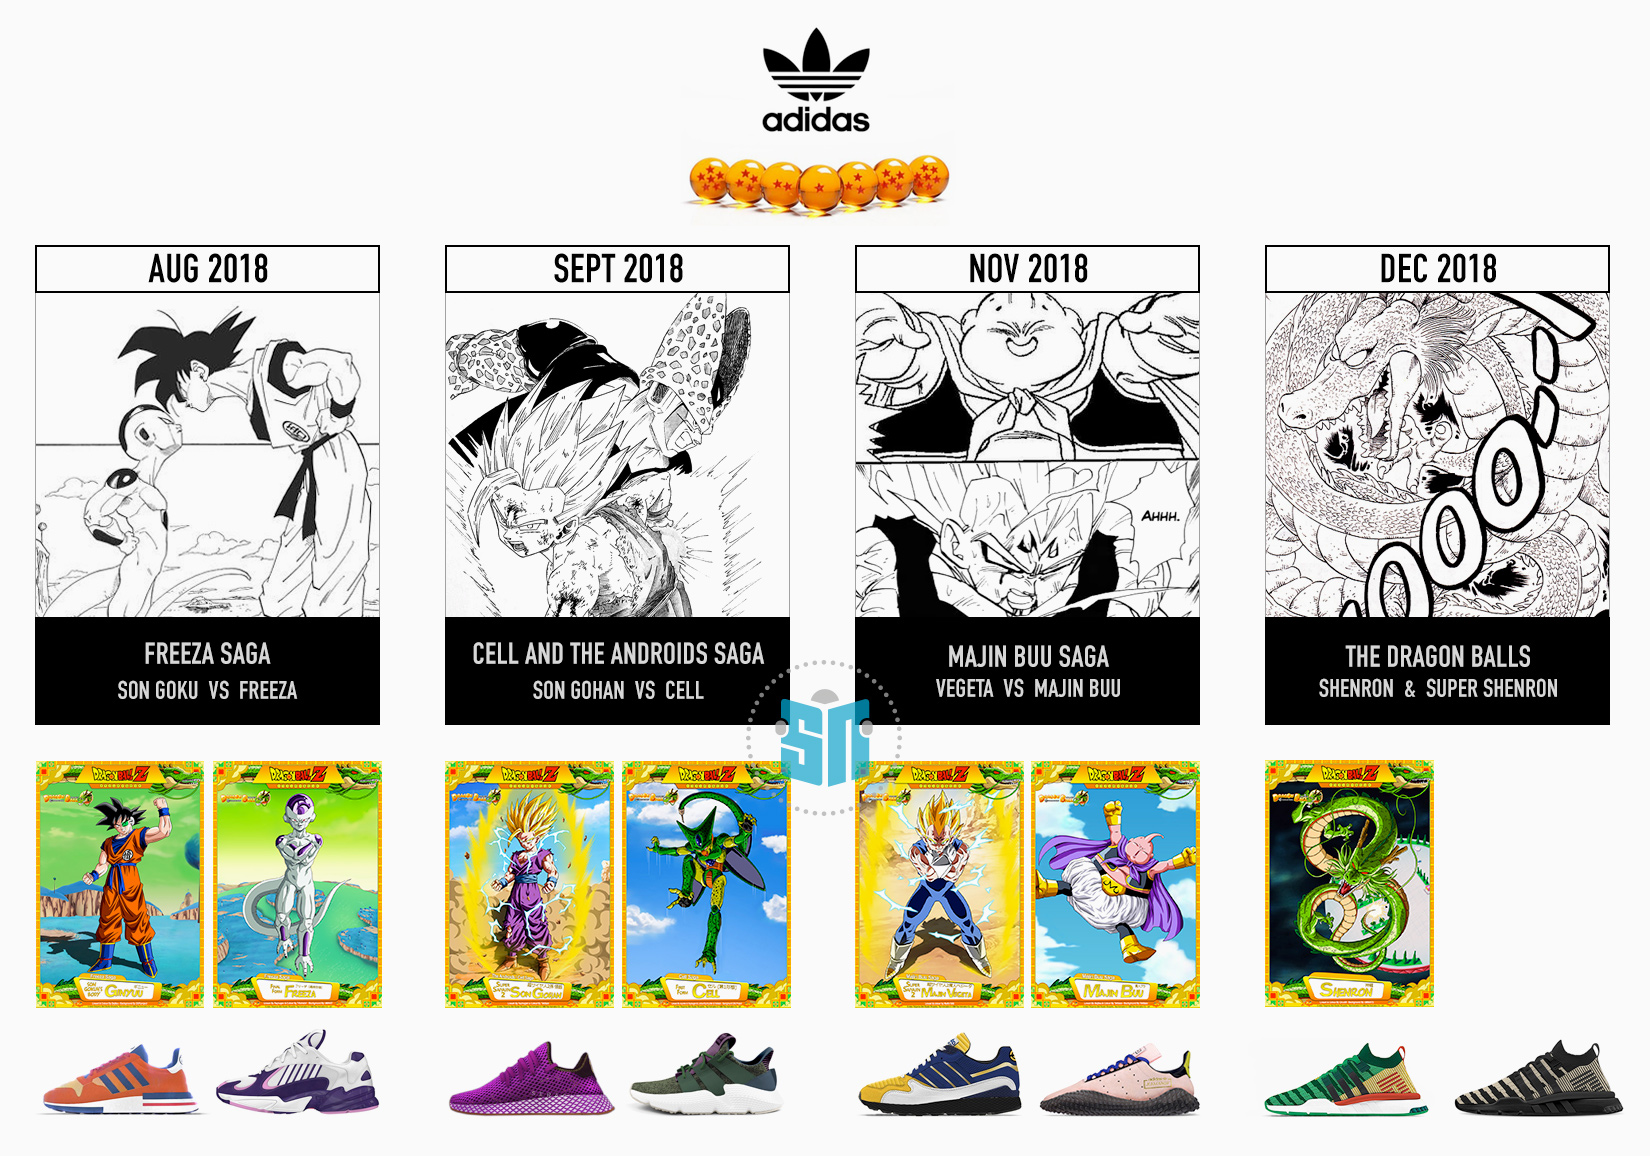 The Complete adidas x Dragon Ball Z Collection